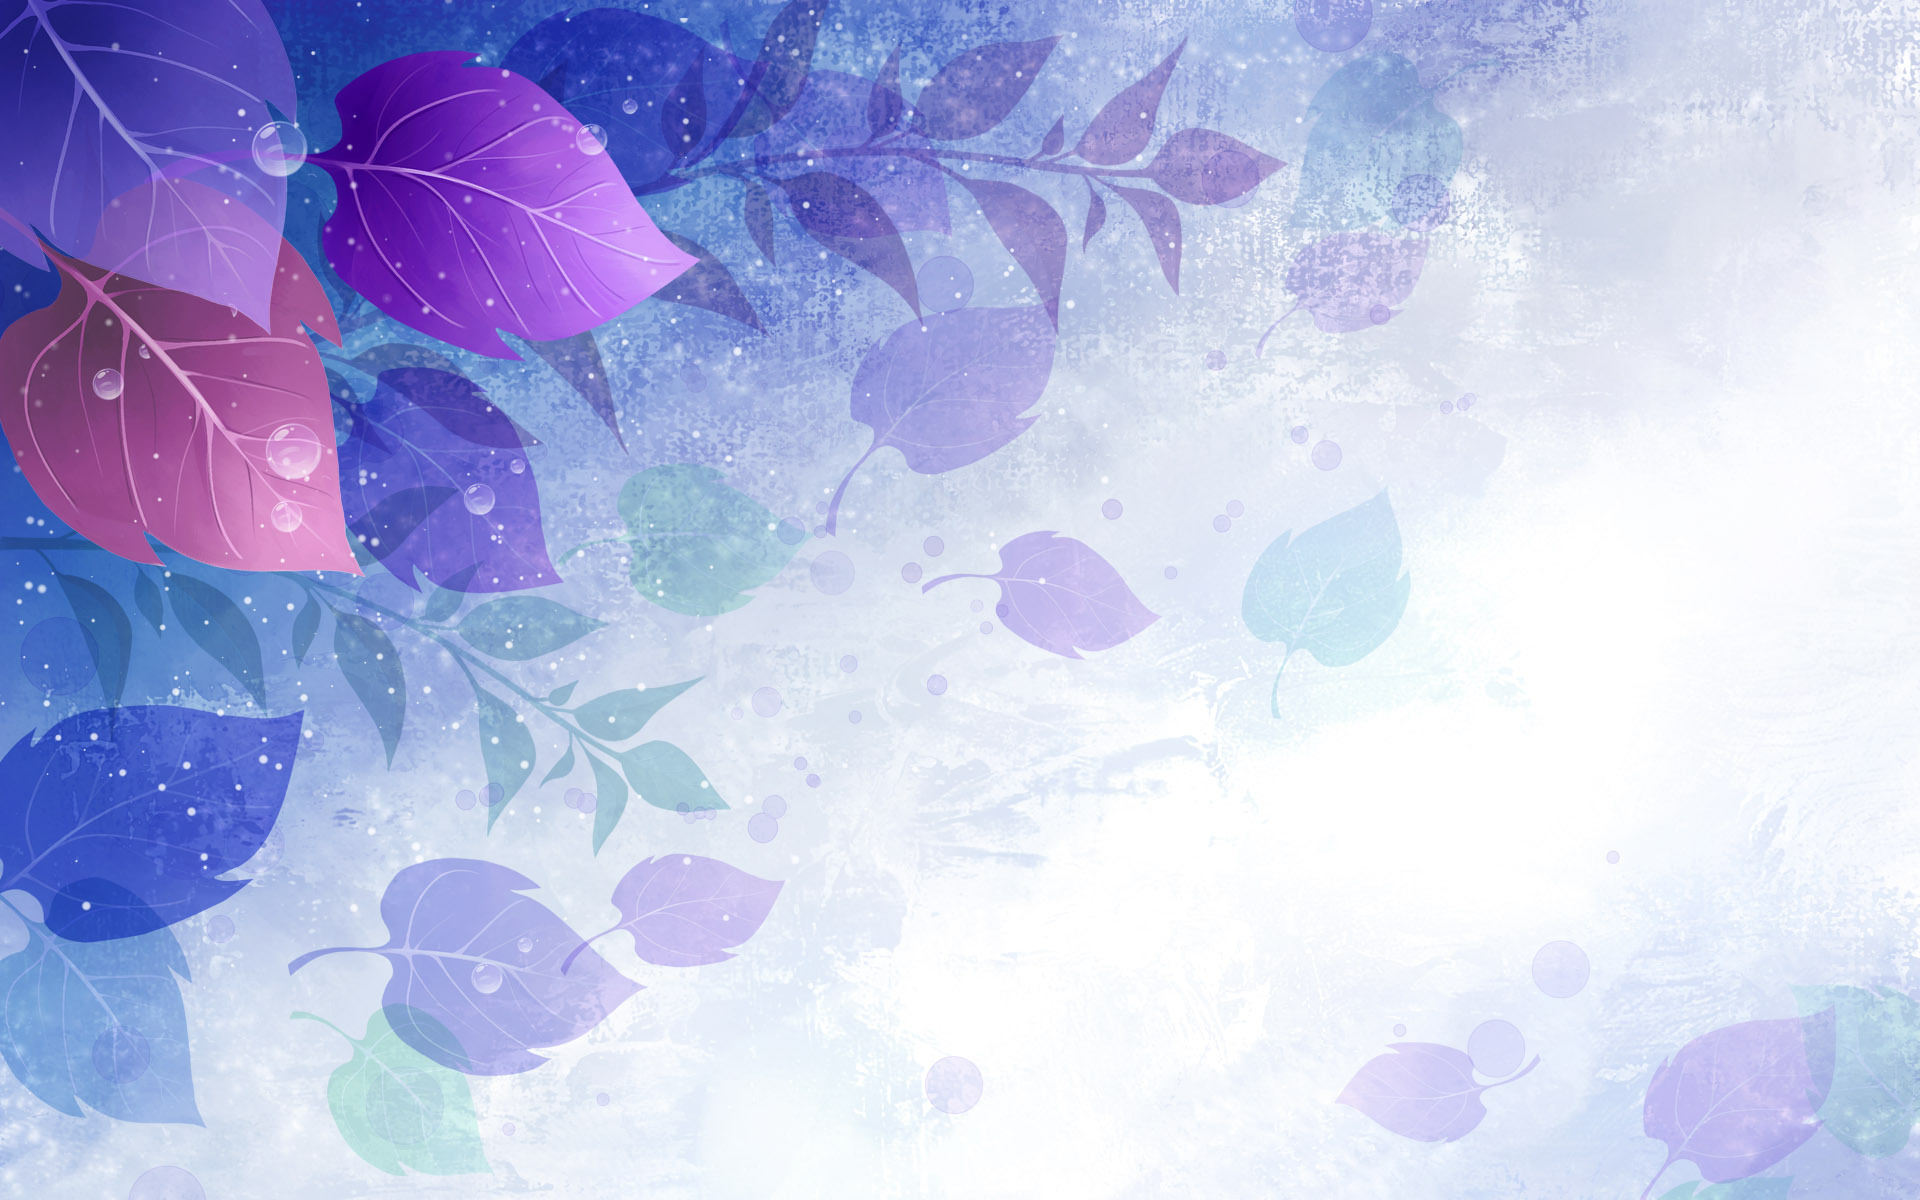 Purple Leaves with Waterdrops Backgrounds 198.9 Kb